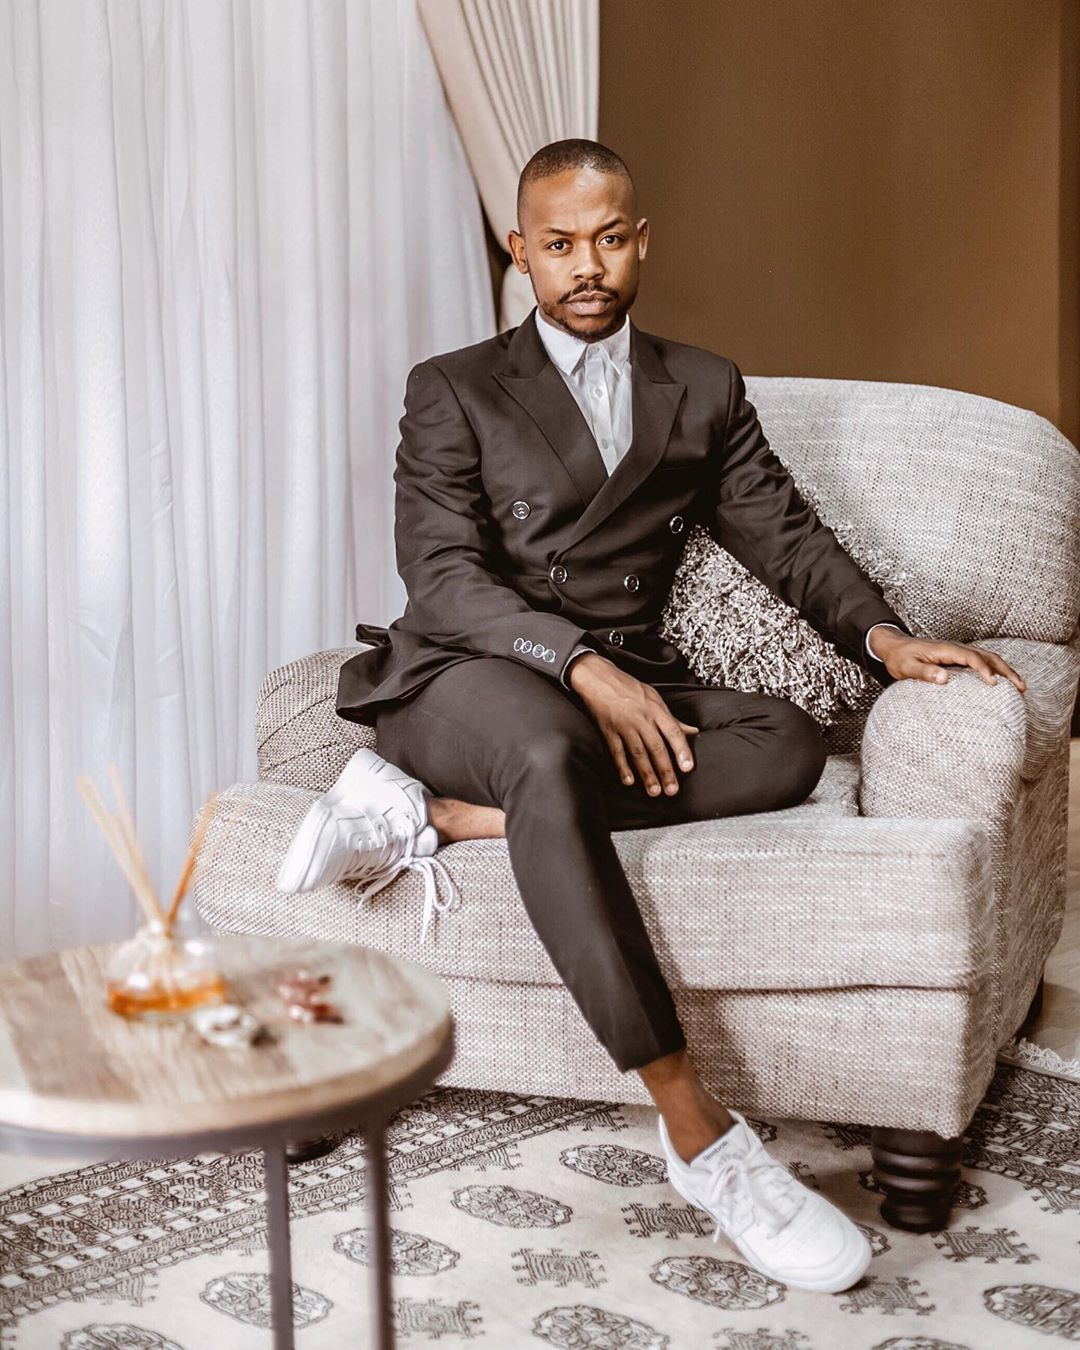 south-african-man-best-dresses-hottest-most-fashionable-stylish-style-rave